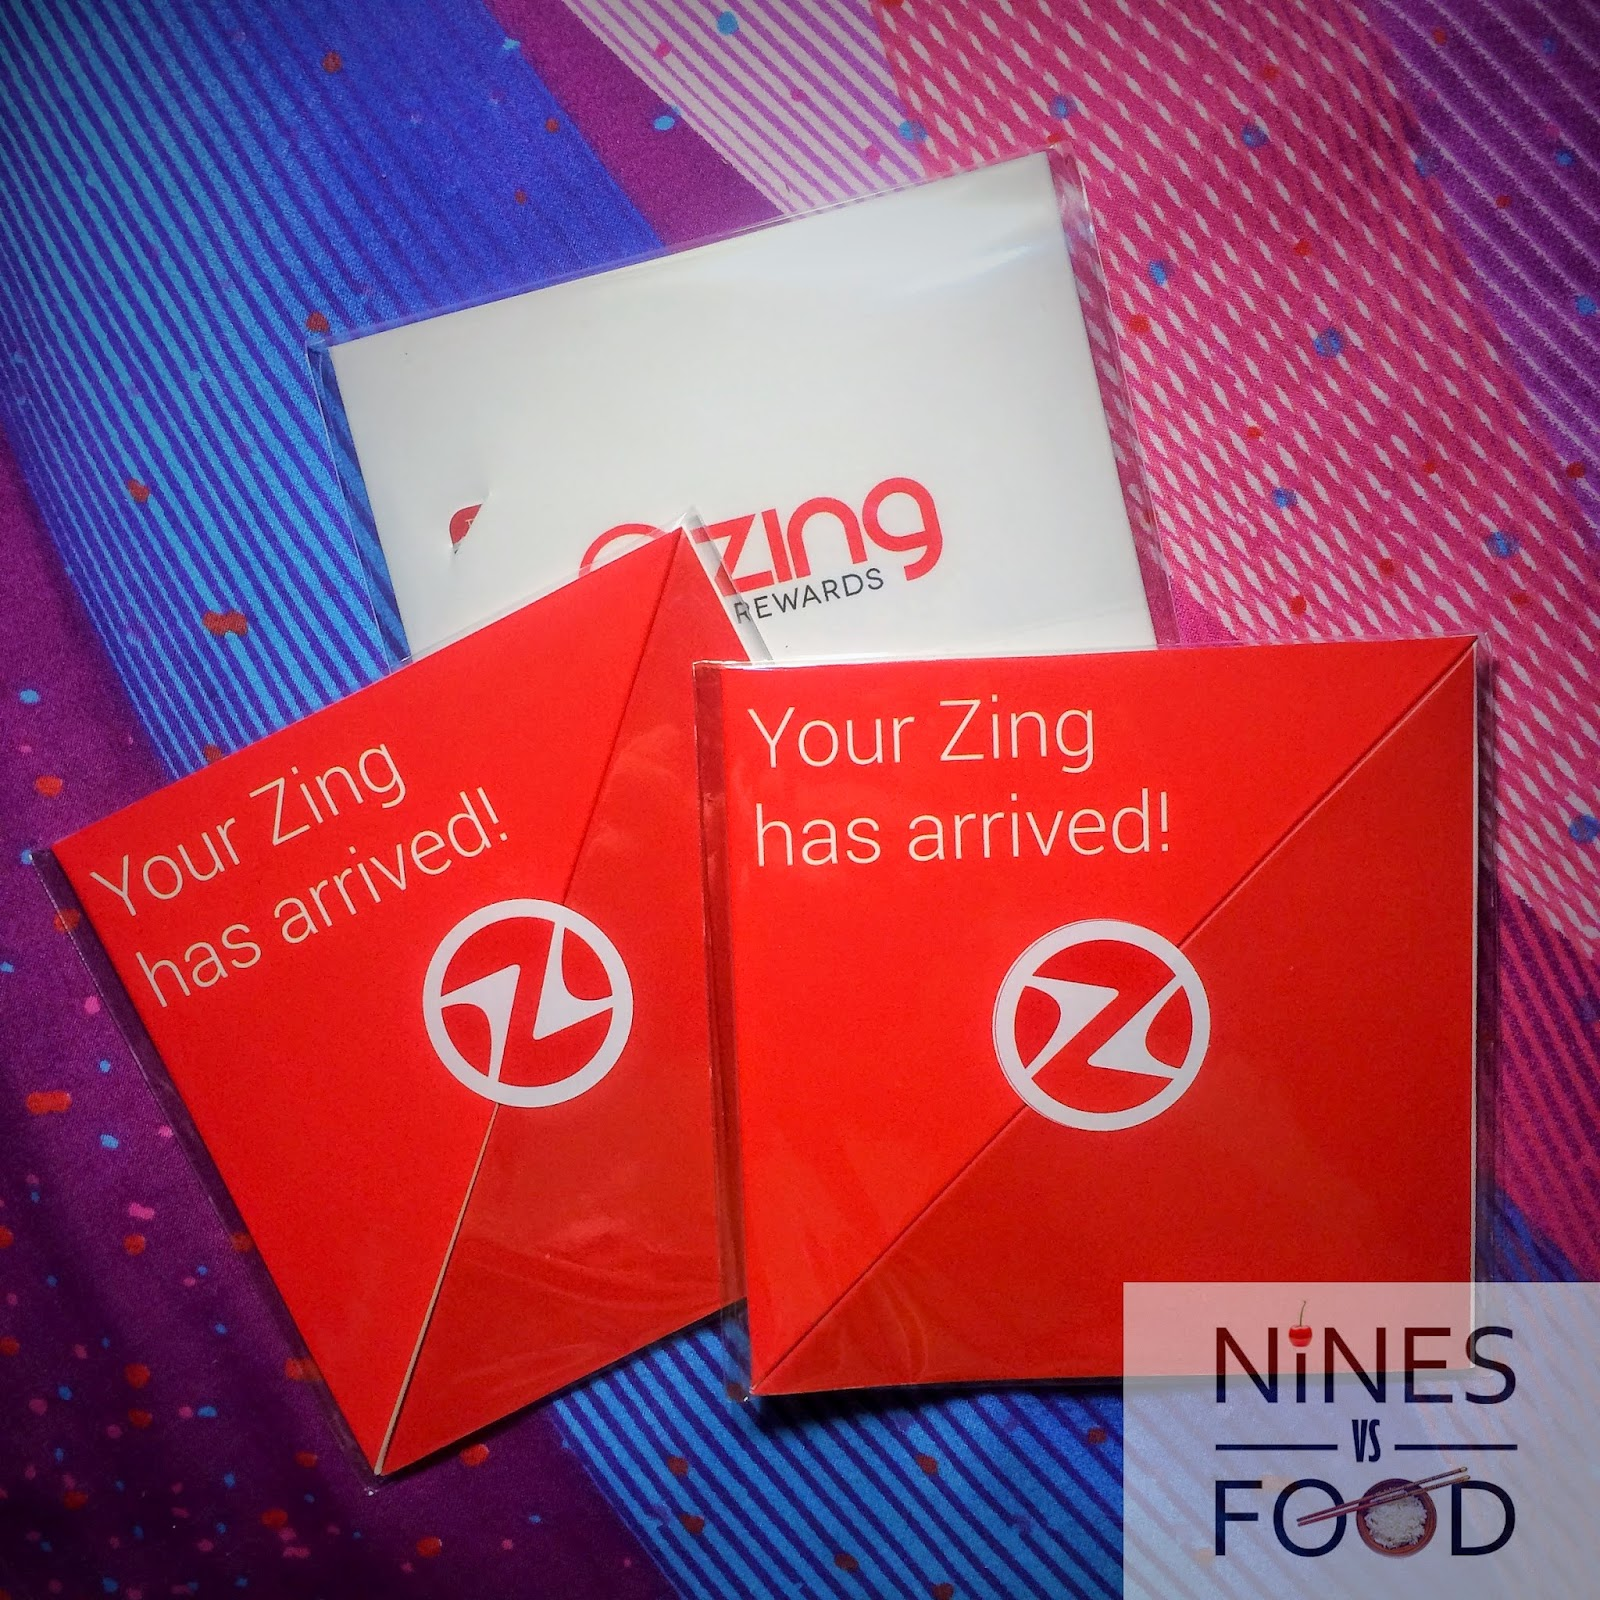 Nines vs. Food - Zing Rewards Philippines-17.jpg